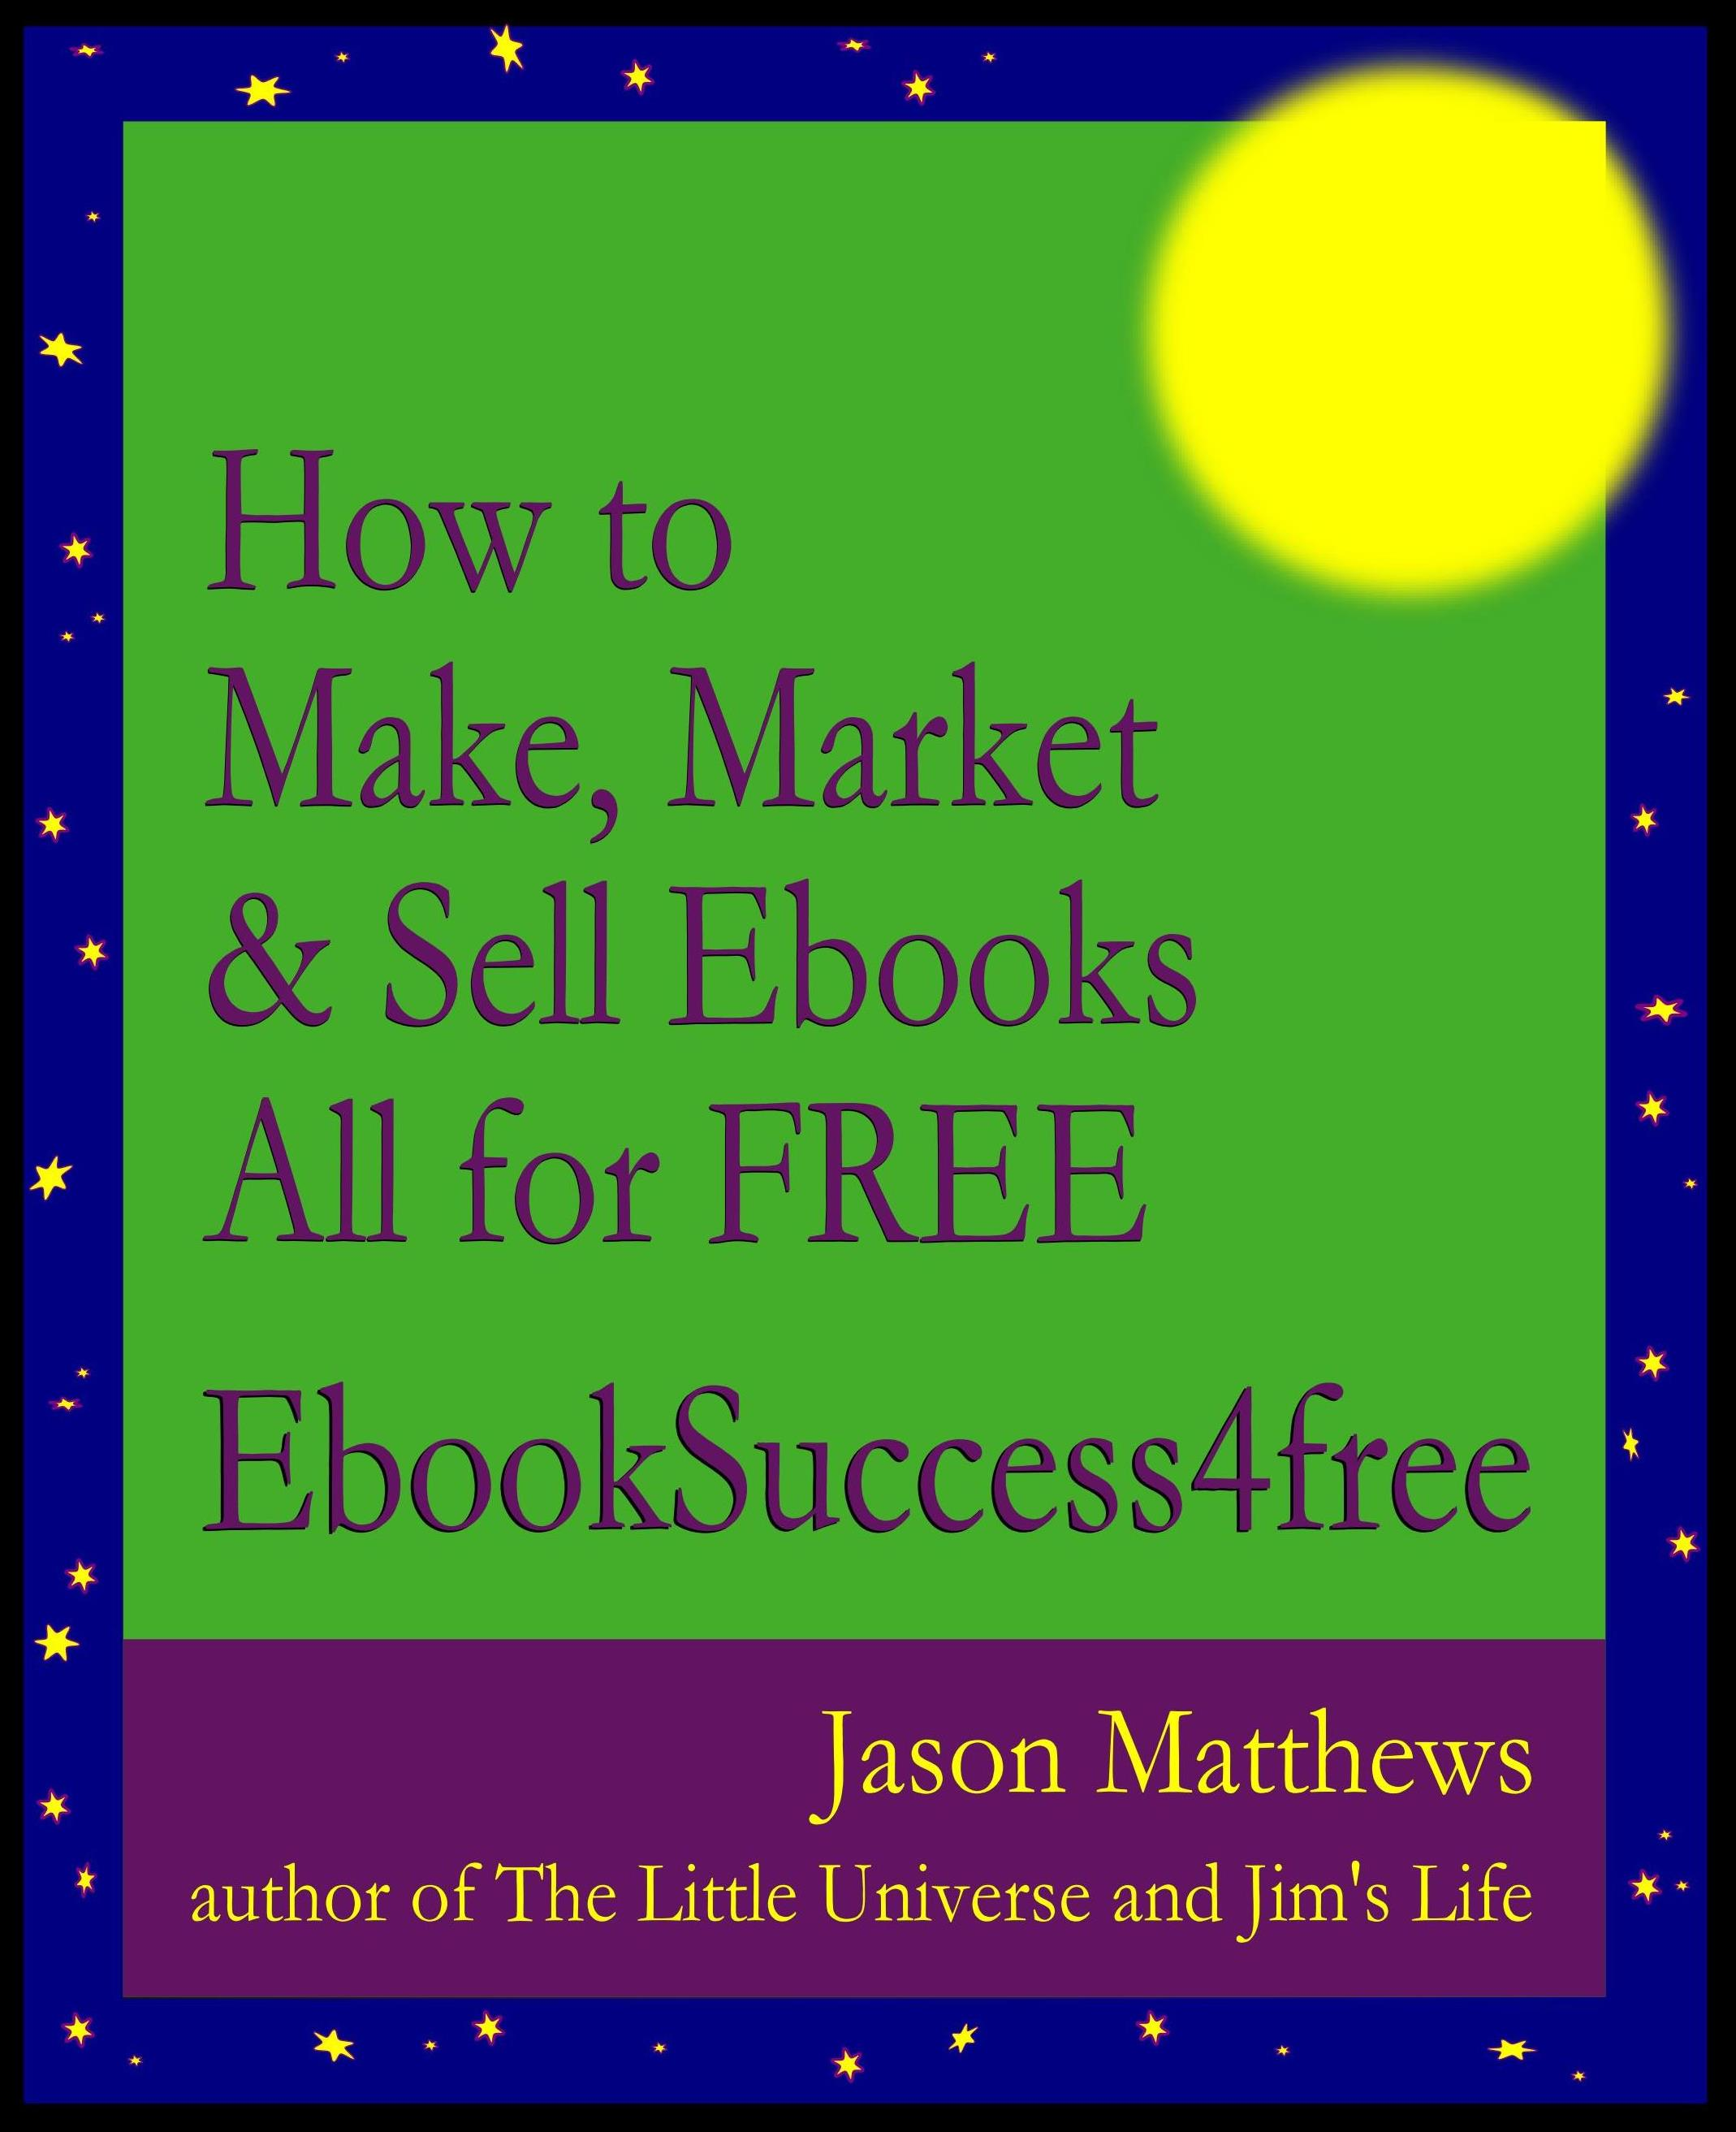 Book Cover Making Software Free : How to make an ebook selldownload free software